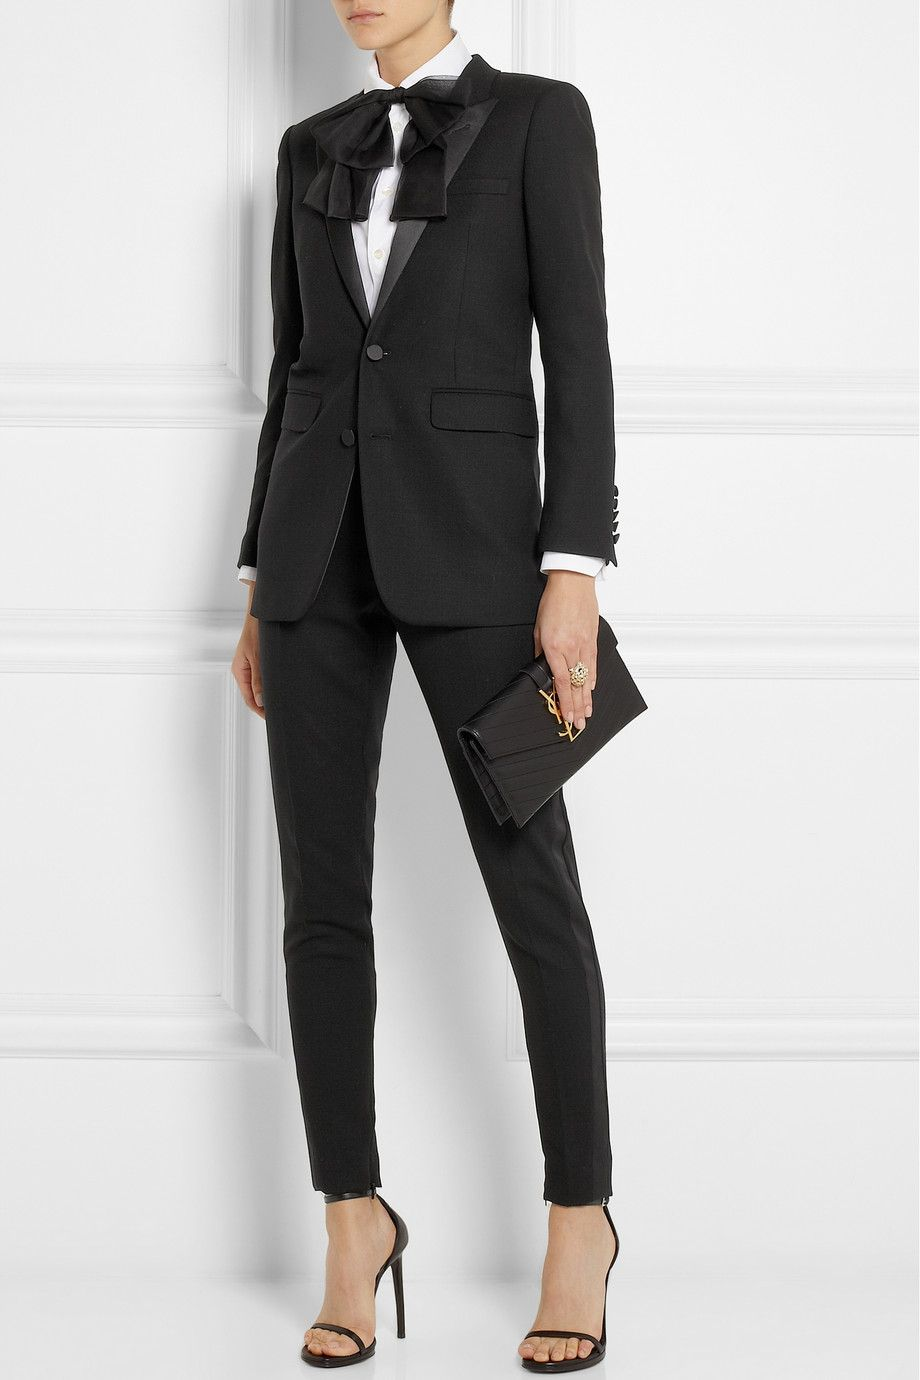 4105922f2b1 Saint Laurent pioneered the iconic 'Le Smoking' tuxedo suit in 1966. These  slim-leg satin-trimmed pants pay homage to the look.